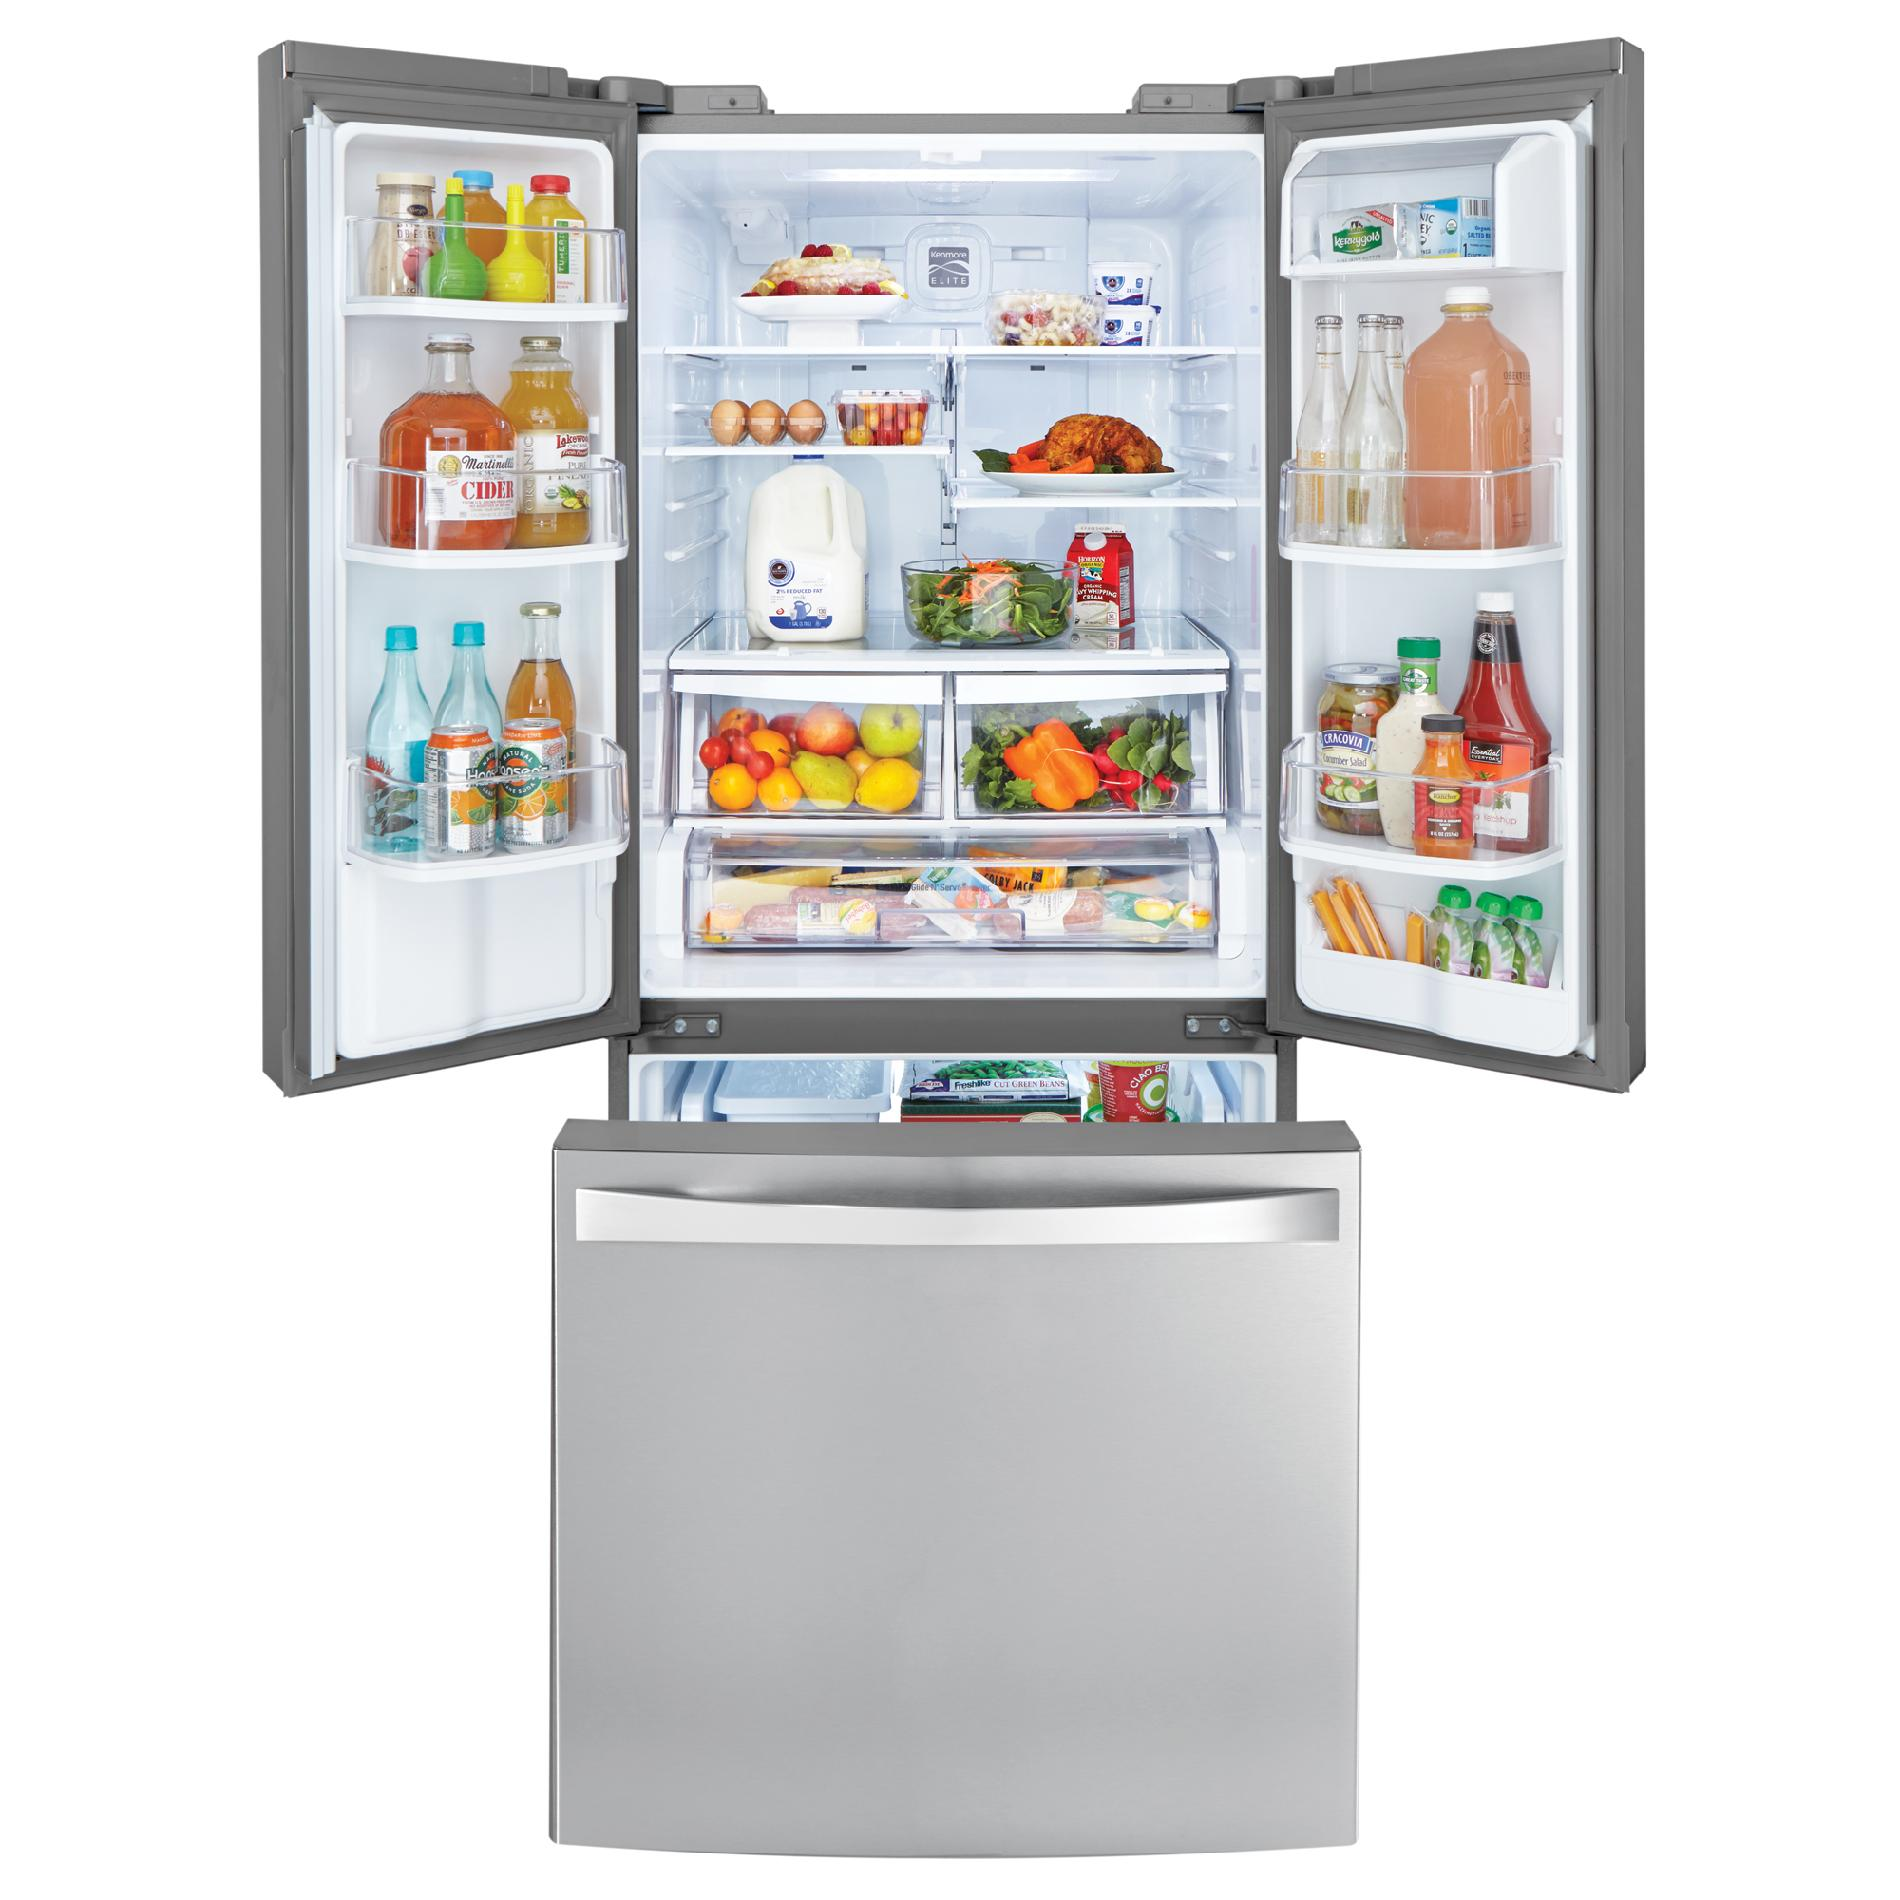 Kenmore Elite 71323 21.8 cu. ft. French Door Bottom-Freezer Refrigerator—Stainless Steel